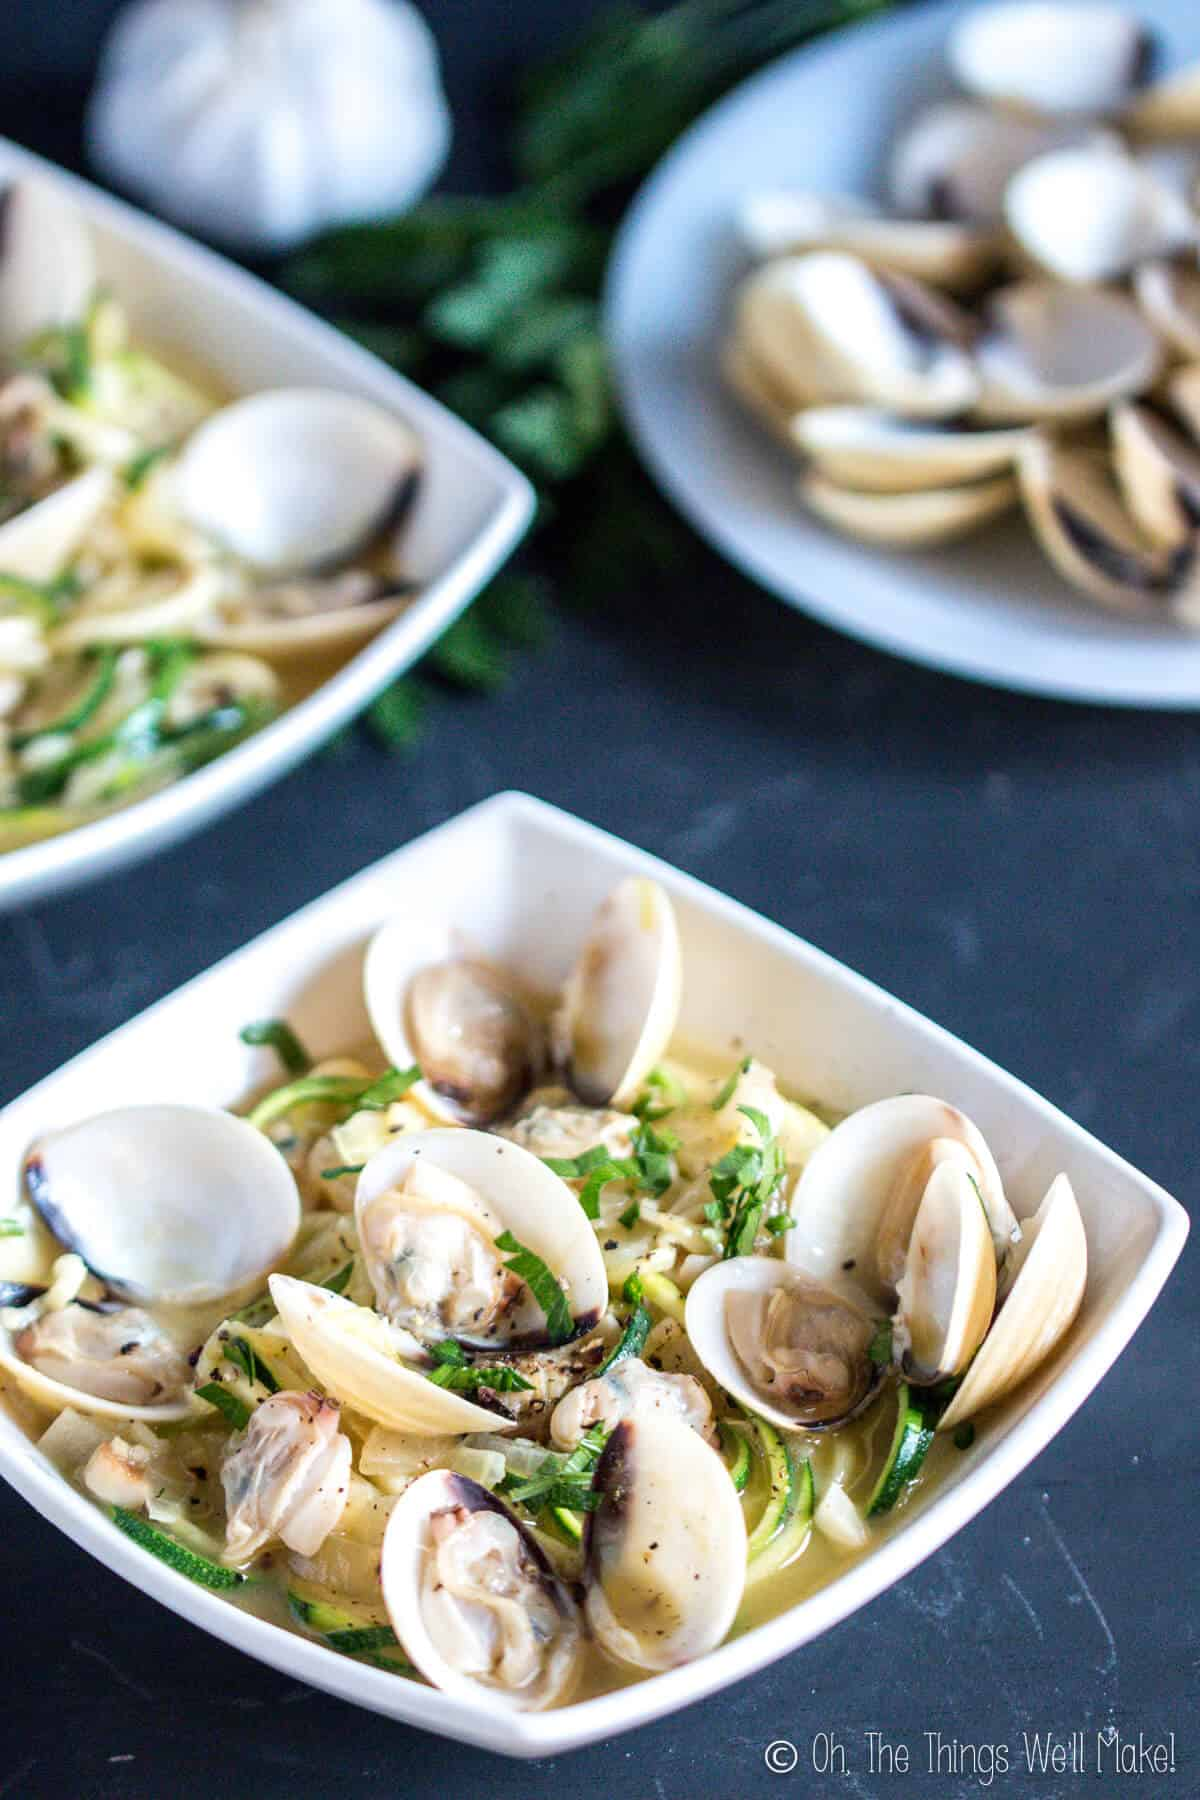 This paleo linguini with clam sauce recipe uses fresh clams and zucchini noodles to make a delicious, quick and easy, healthy meal.